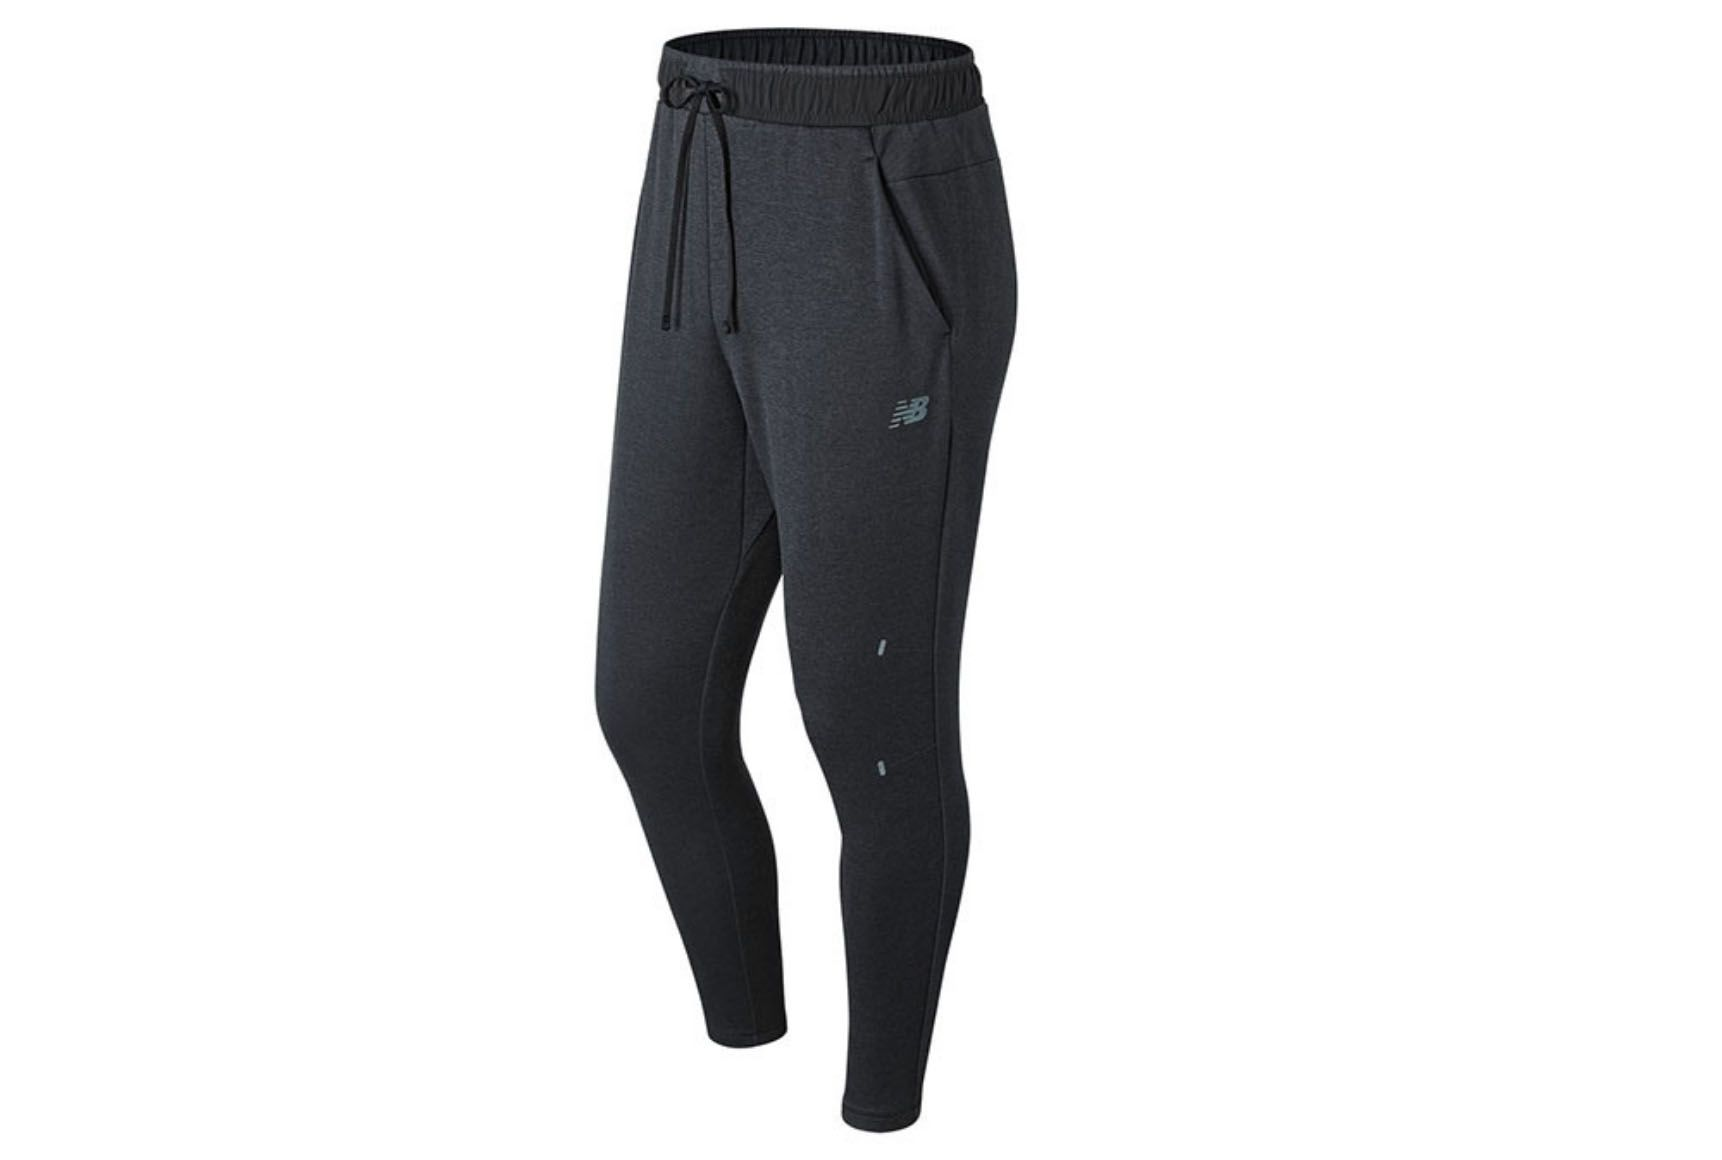 8f9804ec5 Best Running Leggings - Workout Tights 2019